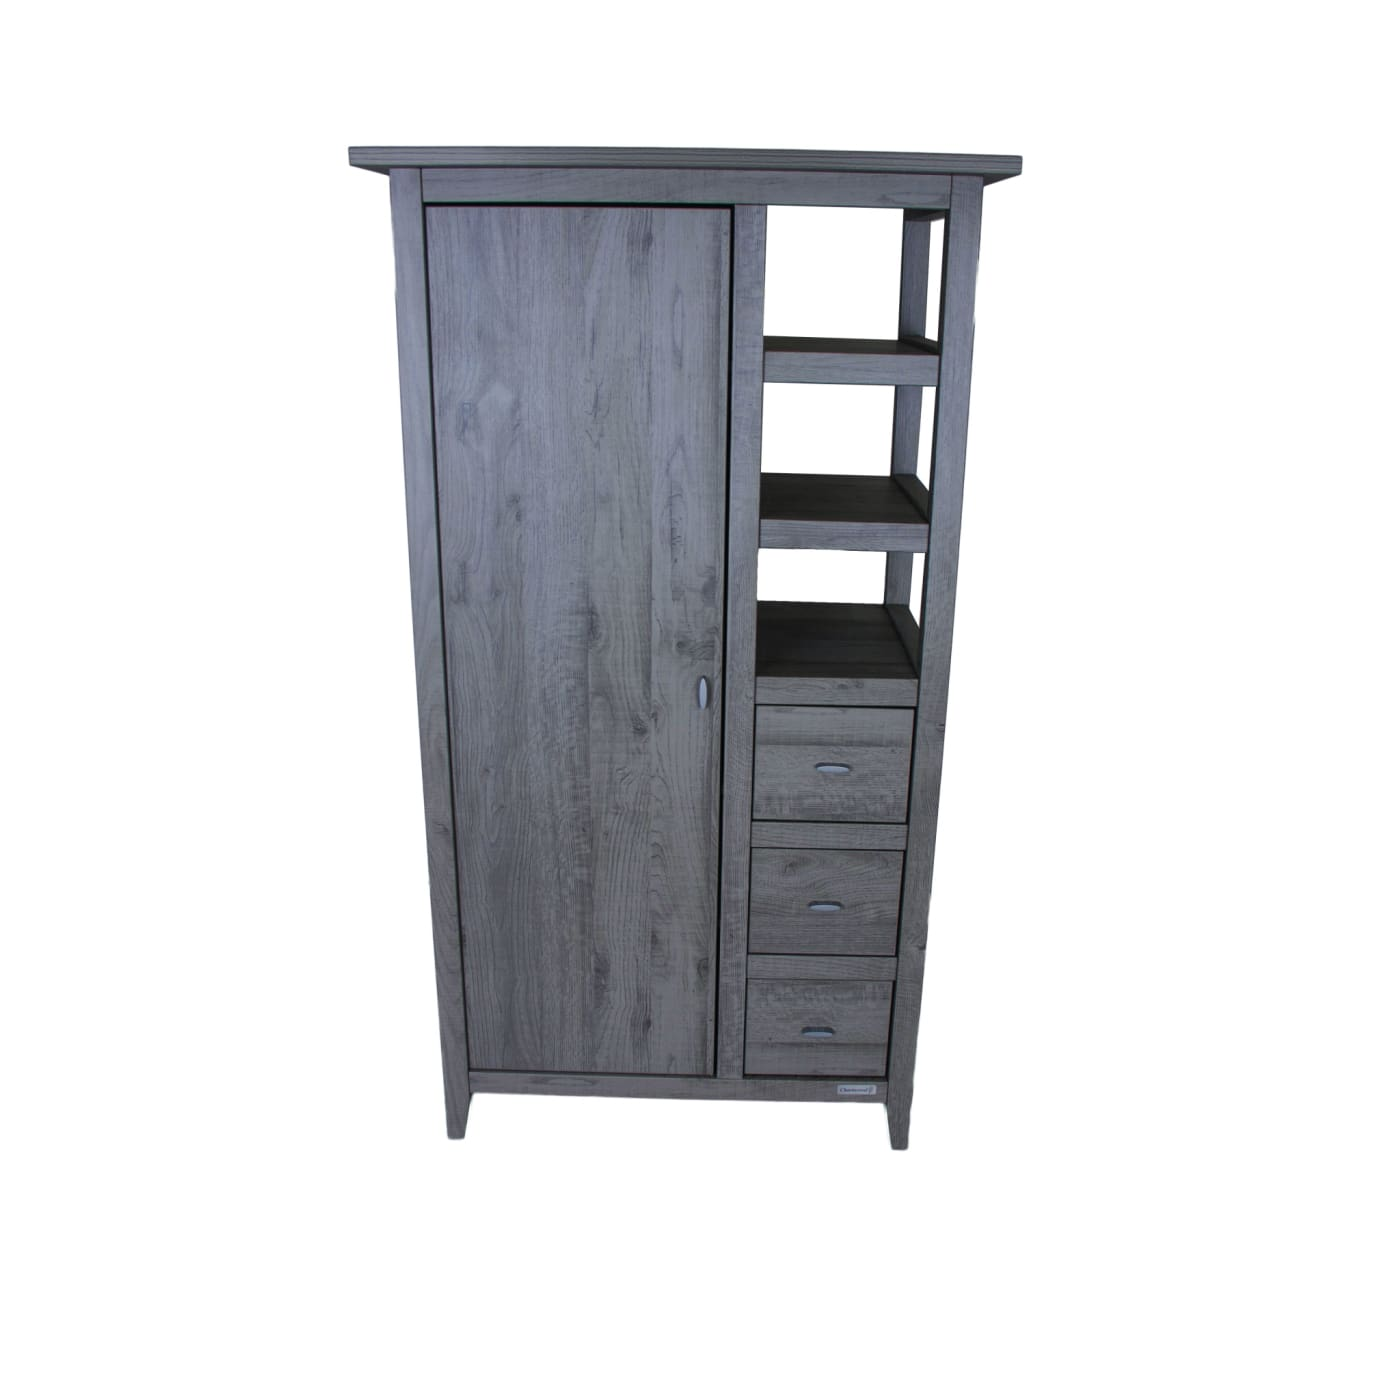 Love N Care Lyon Wardrobe - Dark Grey - NURSERY & BEDTIME - WARDROBES